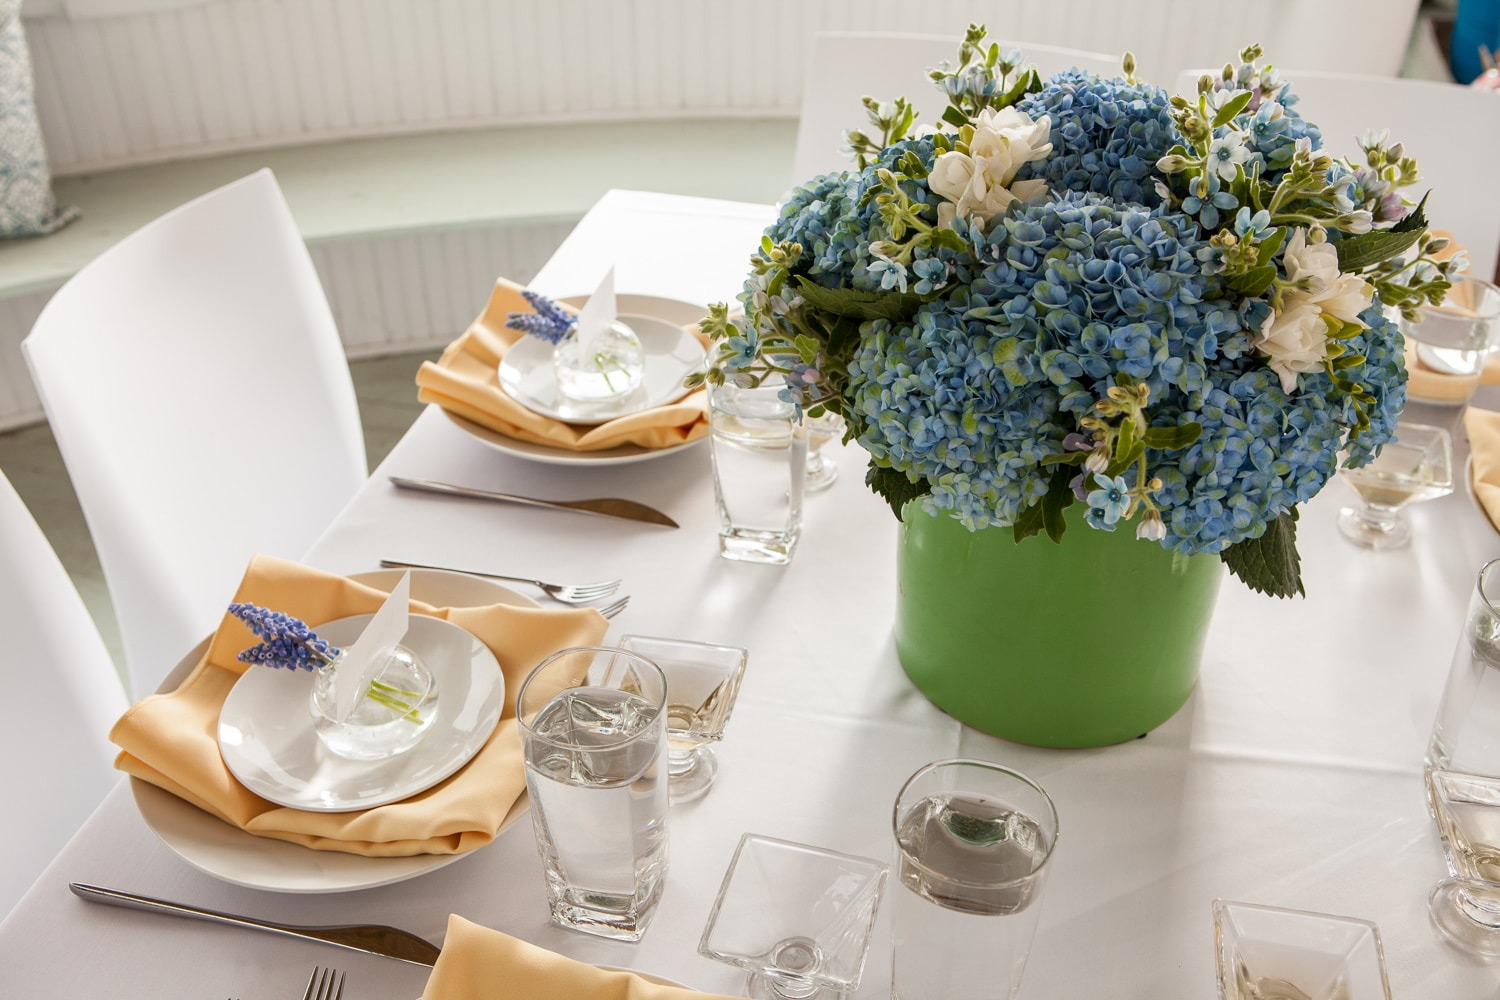 SPRING TABLESCAPE 2019 - NATURAL EARTHY TONES - B FLORAL